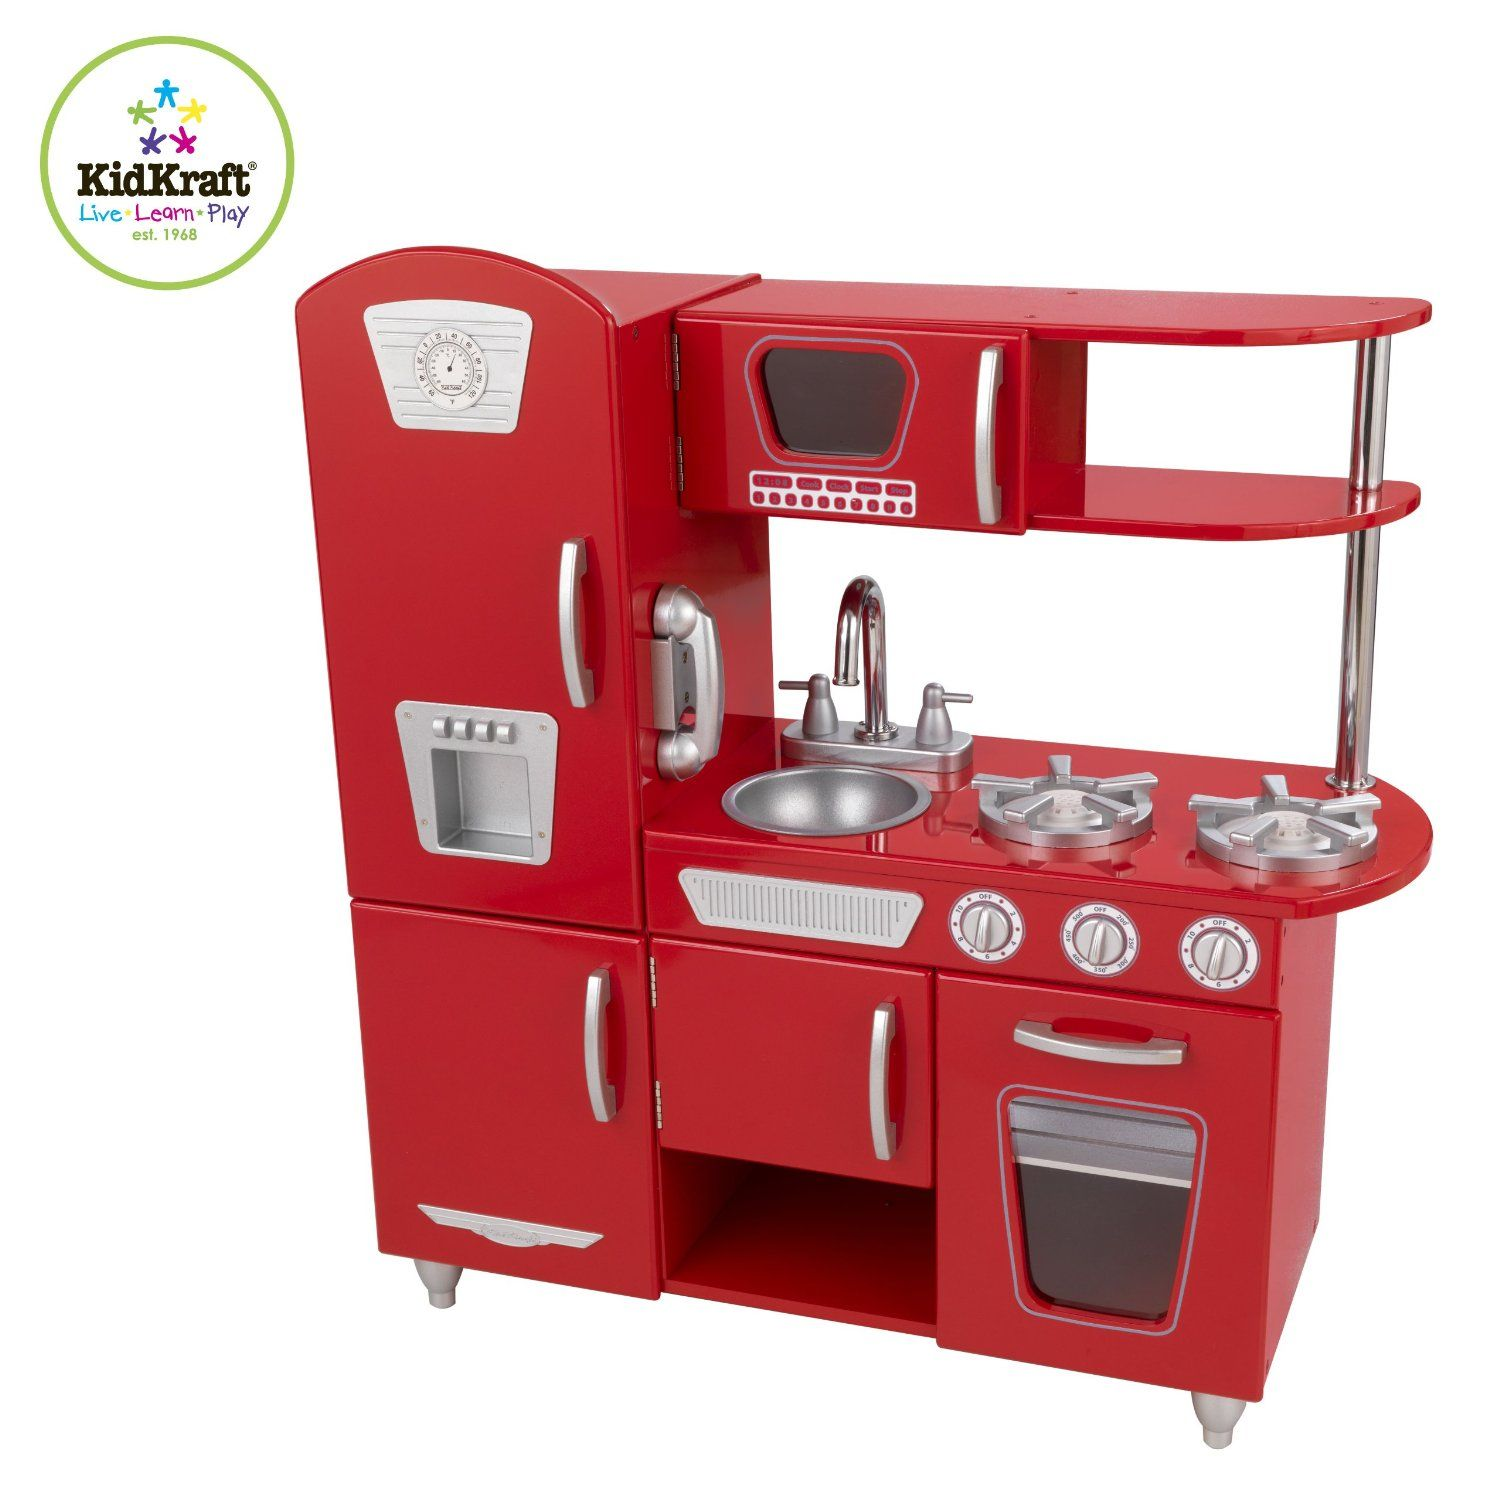 Permalink to 39 new images of Best Toy Kitchen